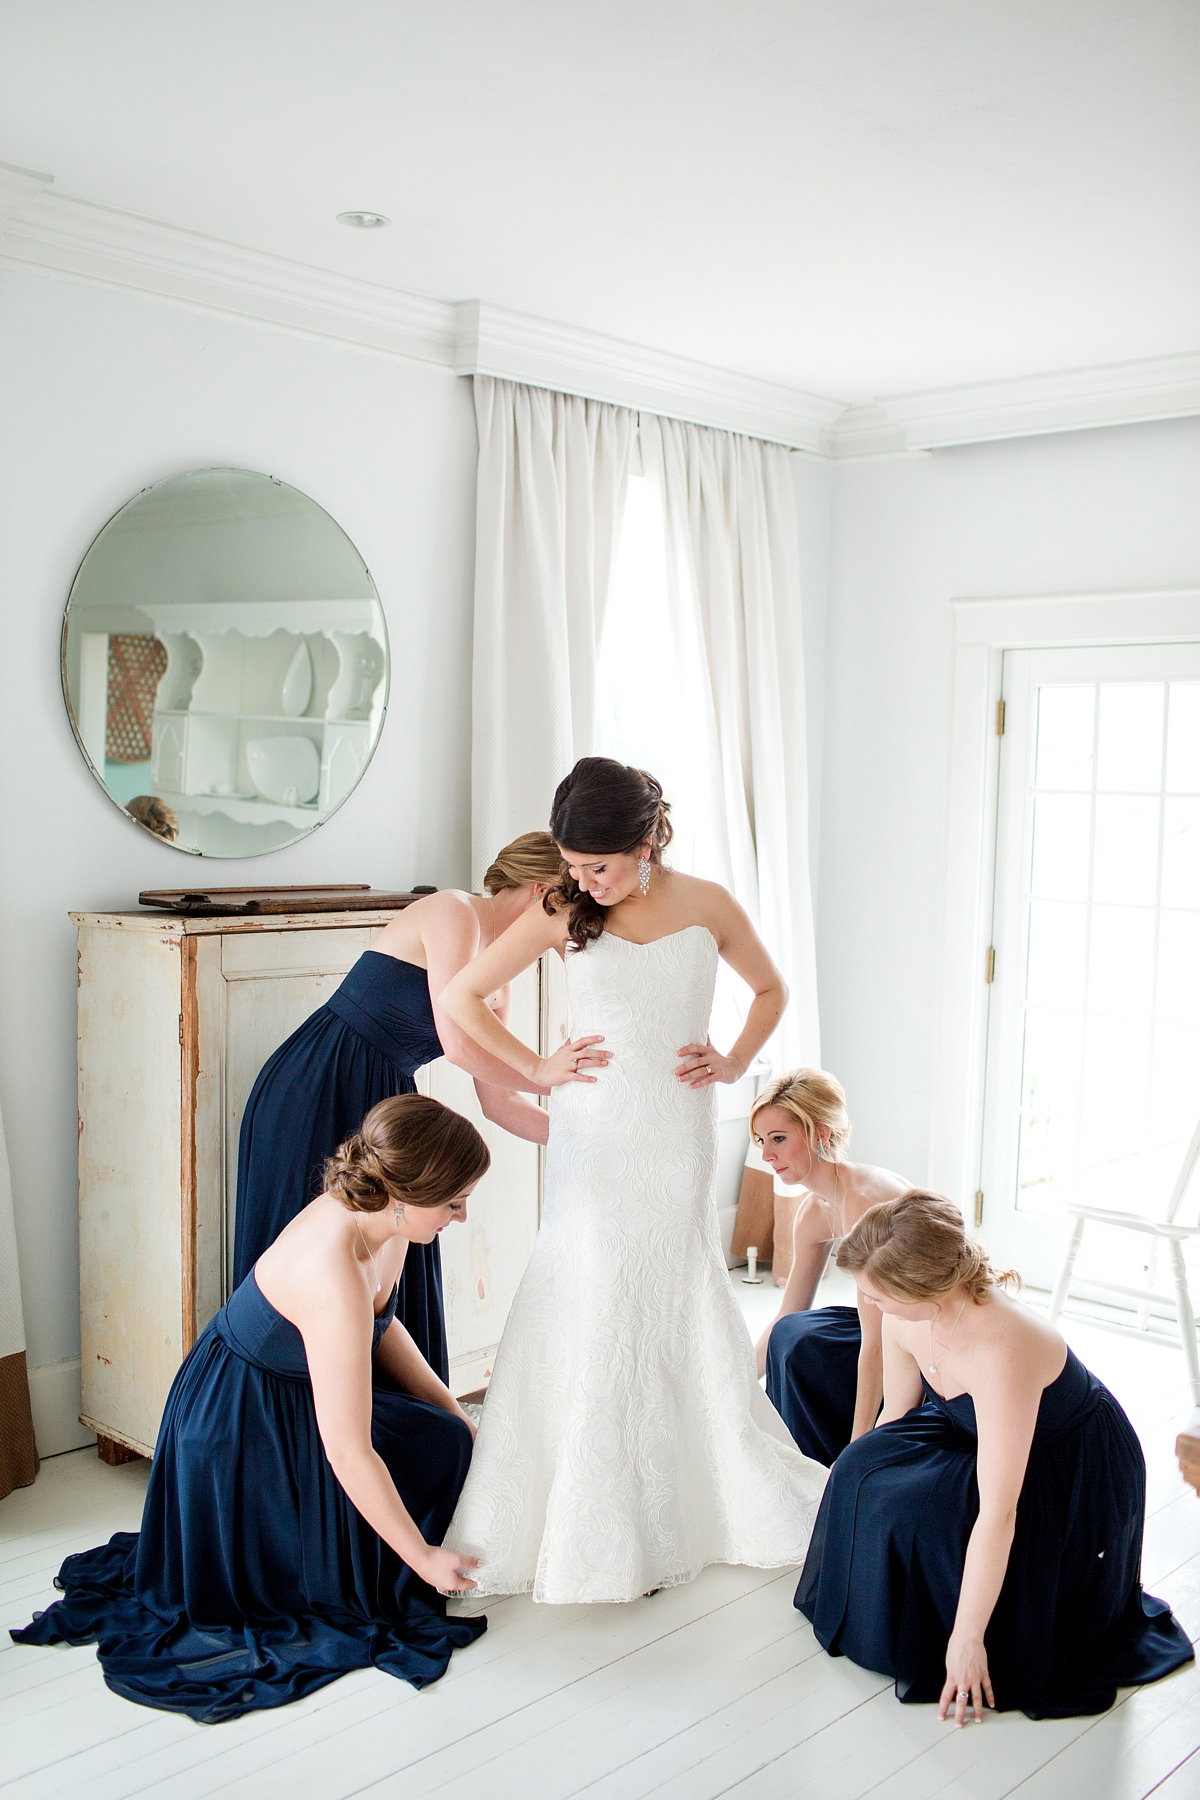 When Bridesmaids Should Get Ready In Order To Get Great Images